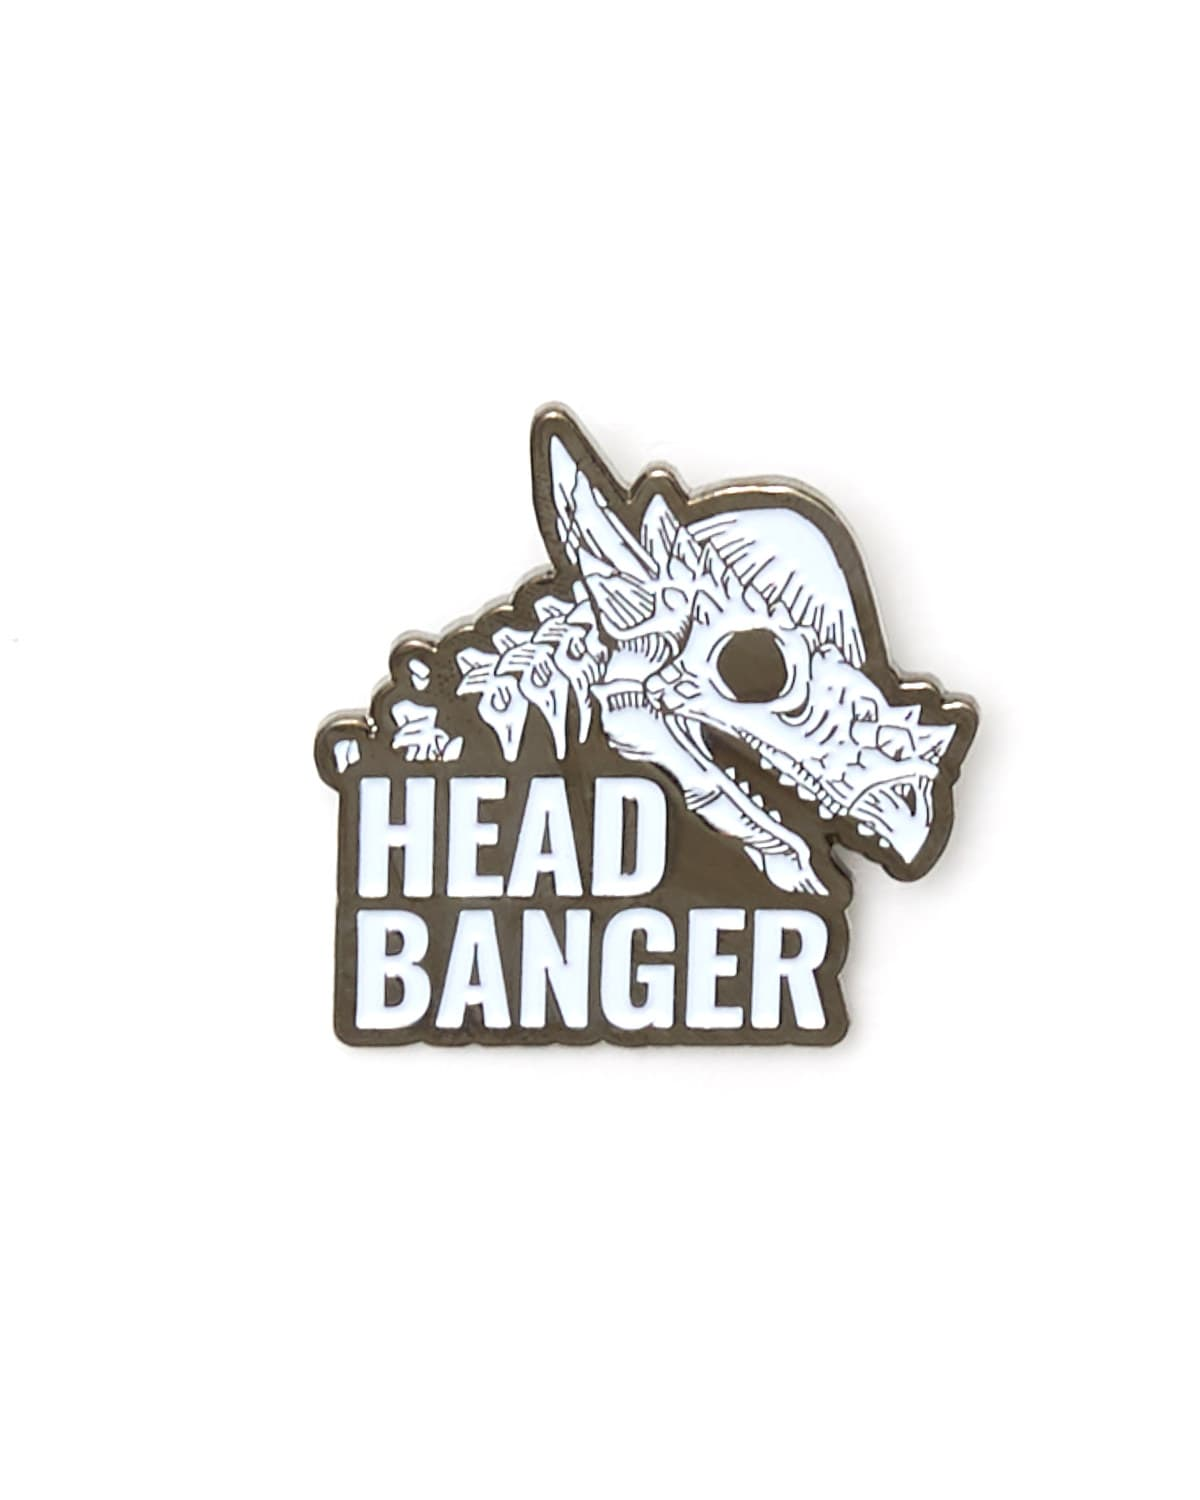 Lost Lands 'Headbanger' Enamel Pin - White